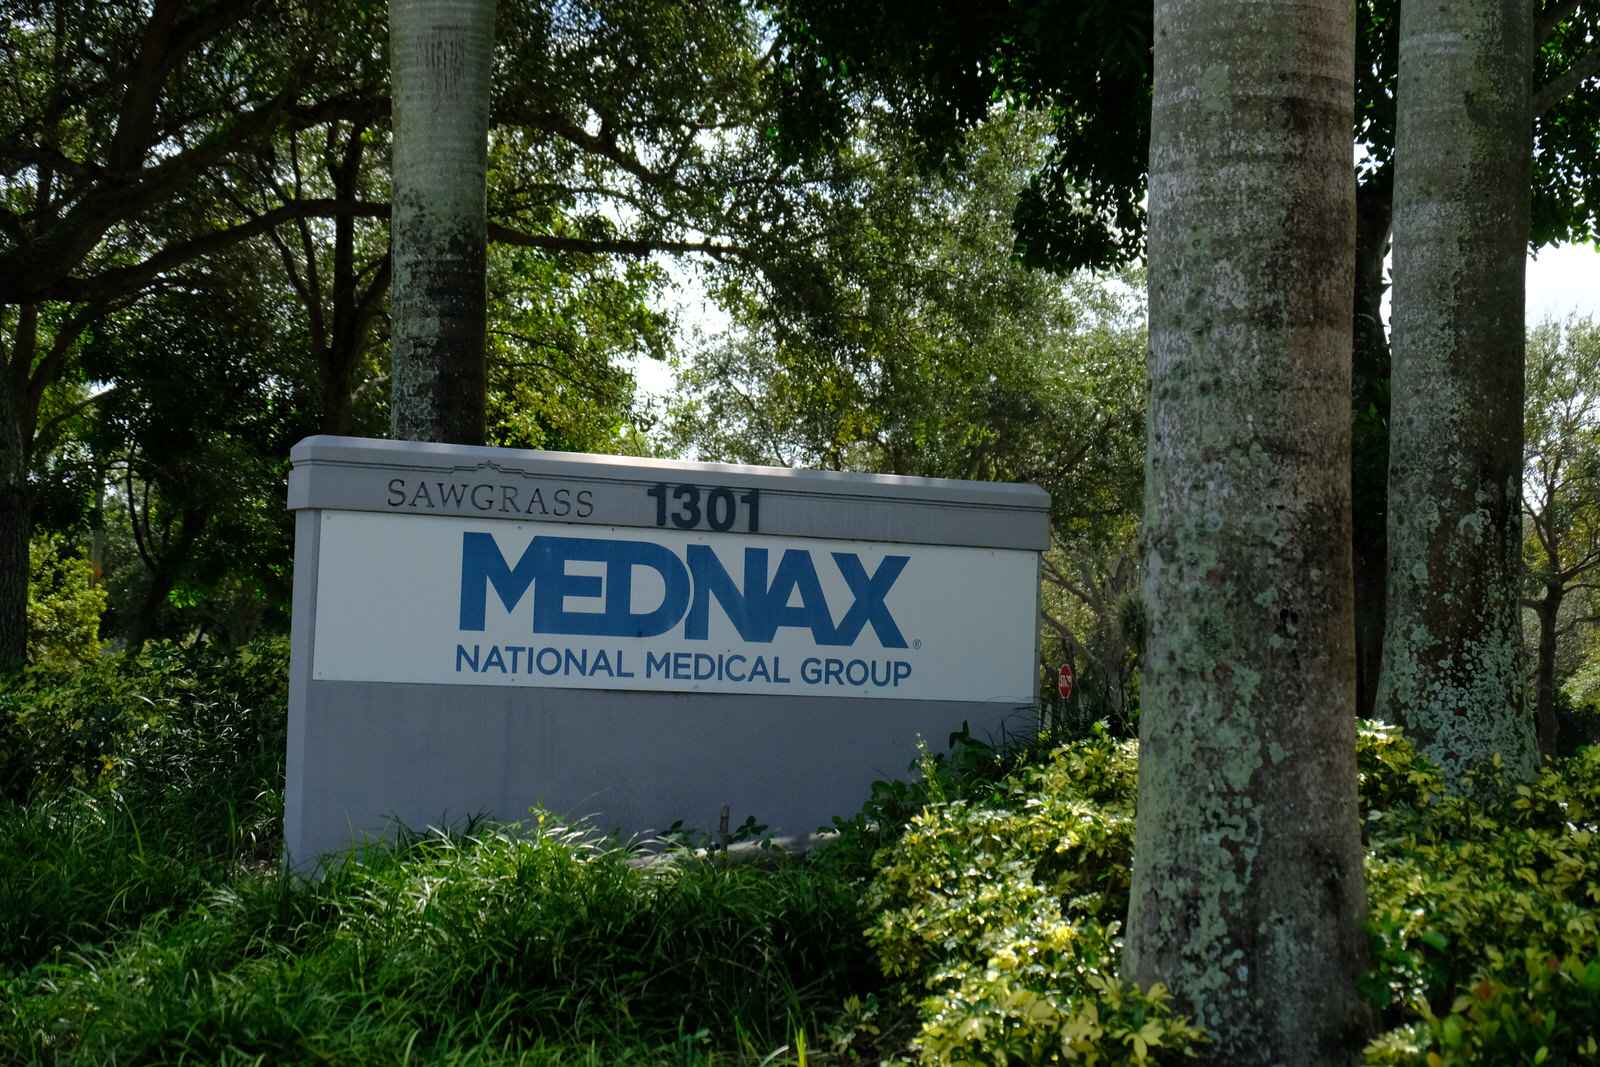 Entrance to MEDNAX's corporate headquarters in Sunrise, Florida.